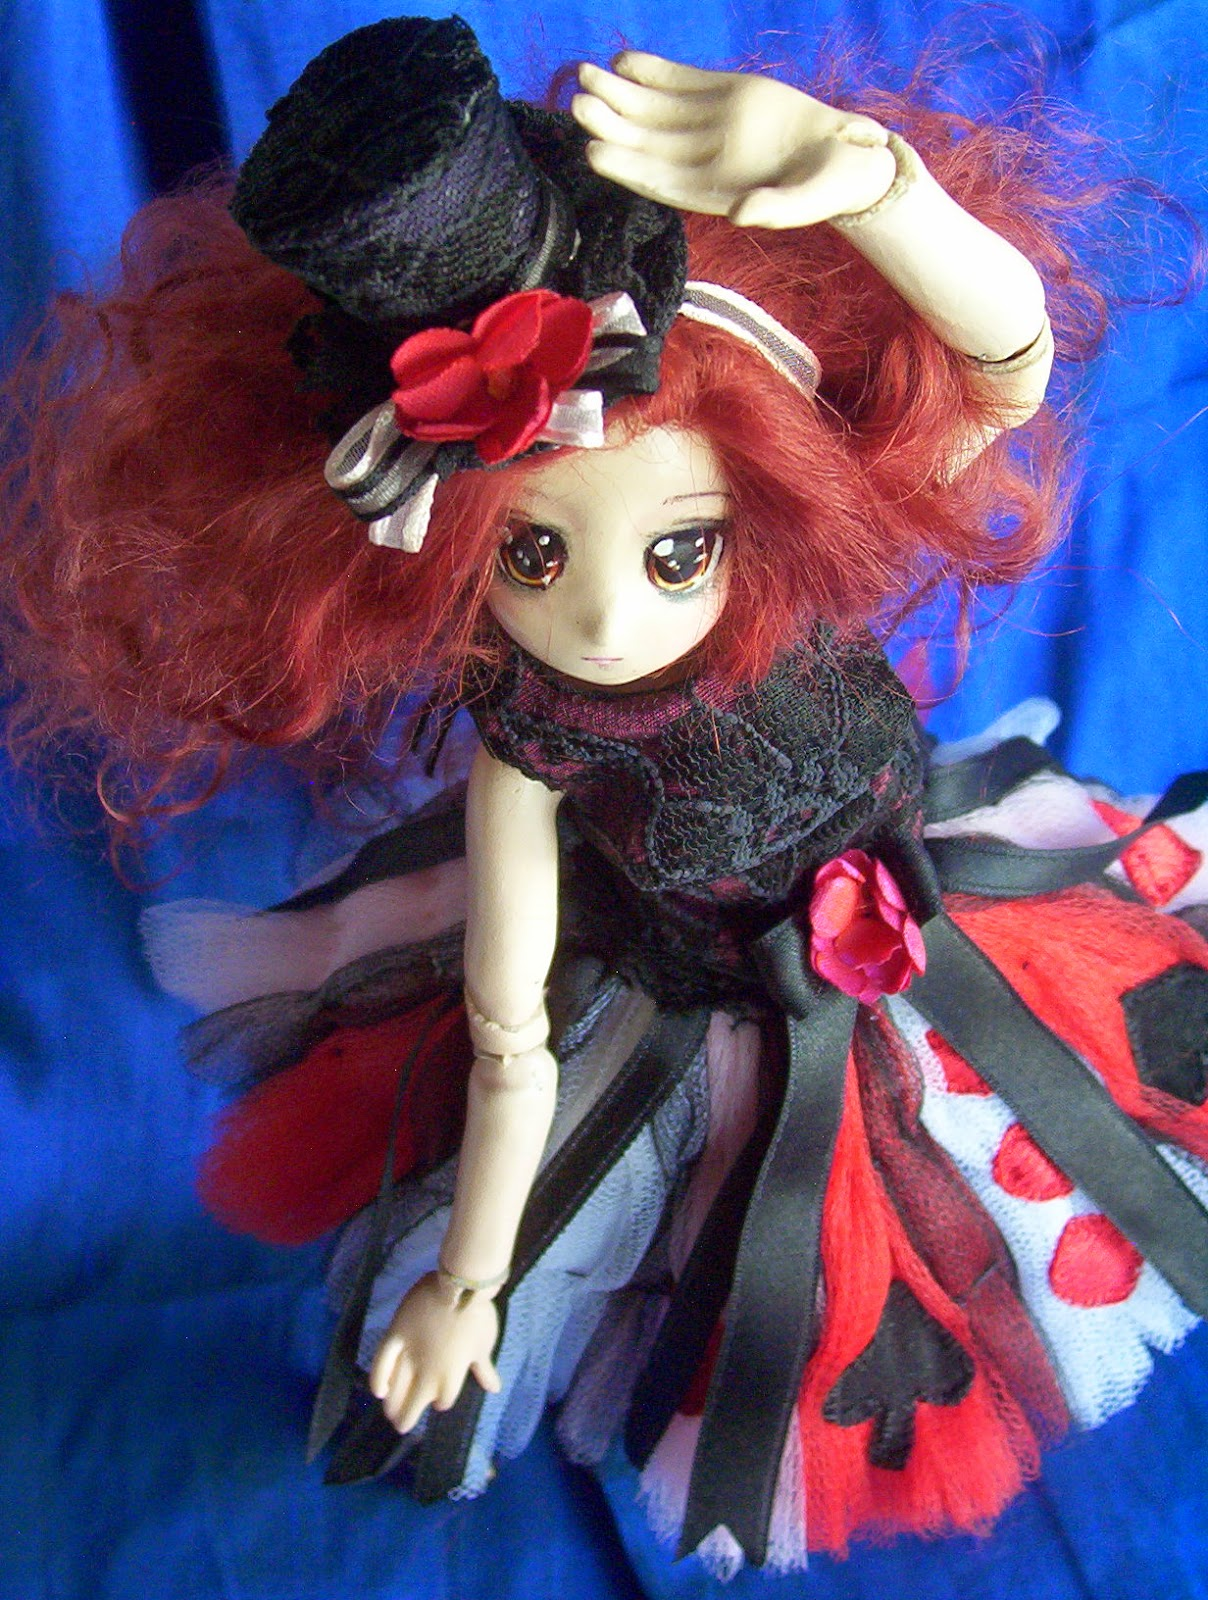 maid of hearts custom doll made by request